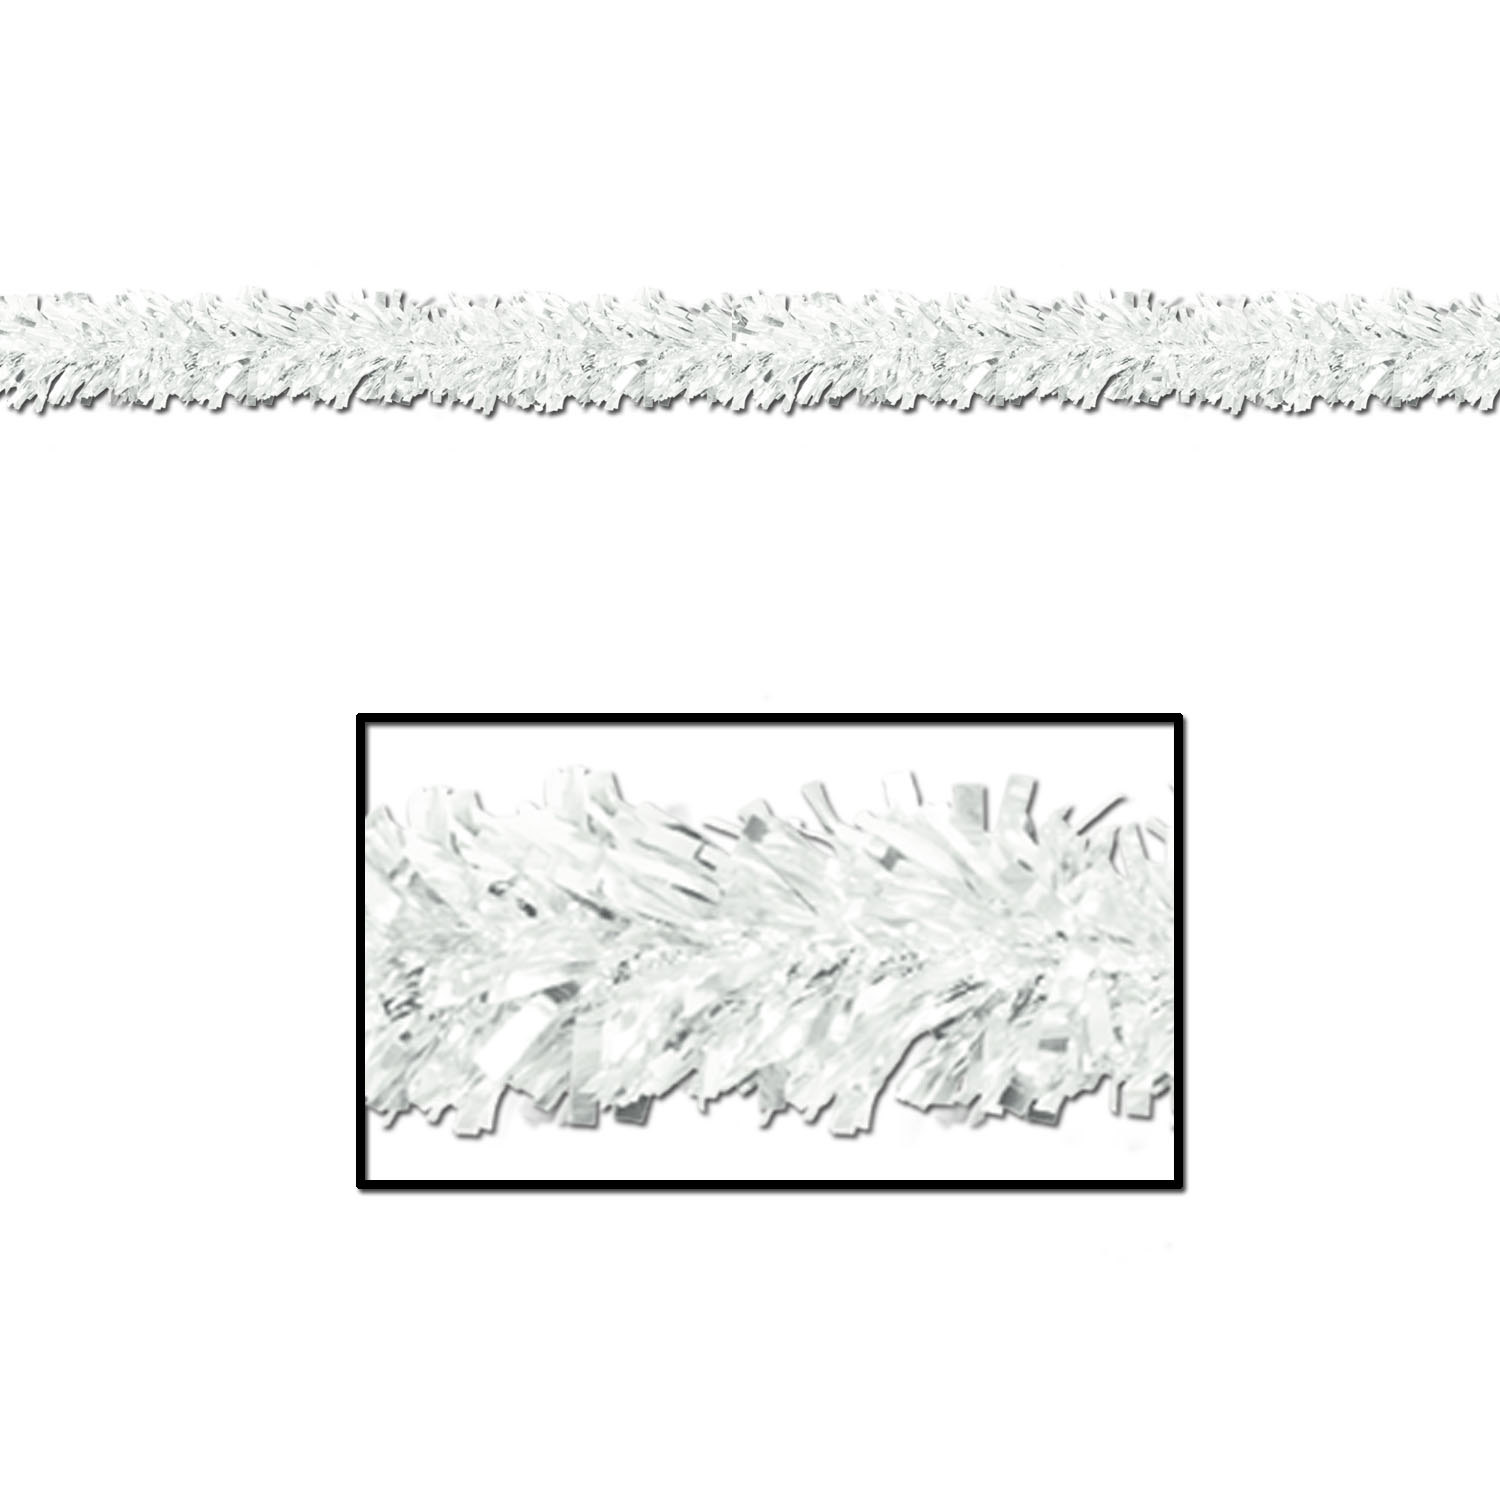 6-Ply White Metallic Festooning Garland (Pack of 12) Garland, White, Festooning, Metallic Garland, Hanging Decor, Christmas, Winter, Snow, Snowflakes, Wholesale party decor, Inexpensive party supplies, Bulk party goods, Cheap, Winter wonderland